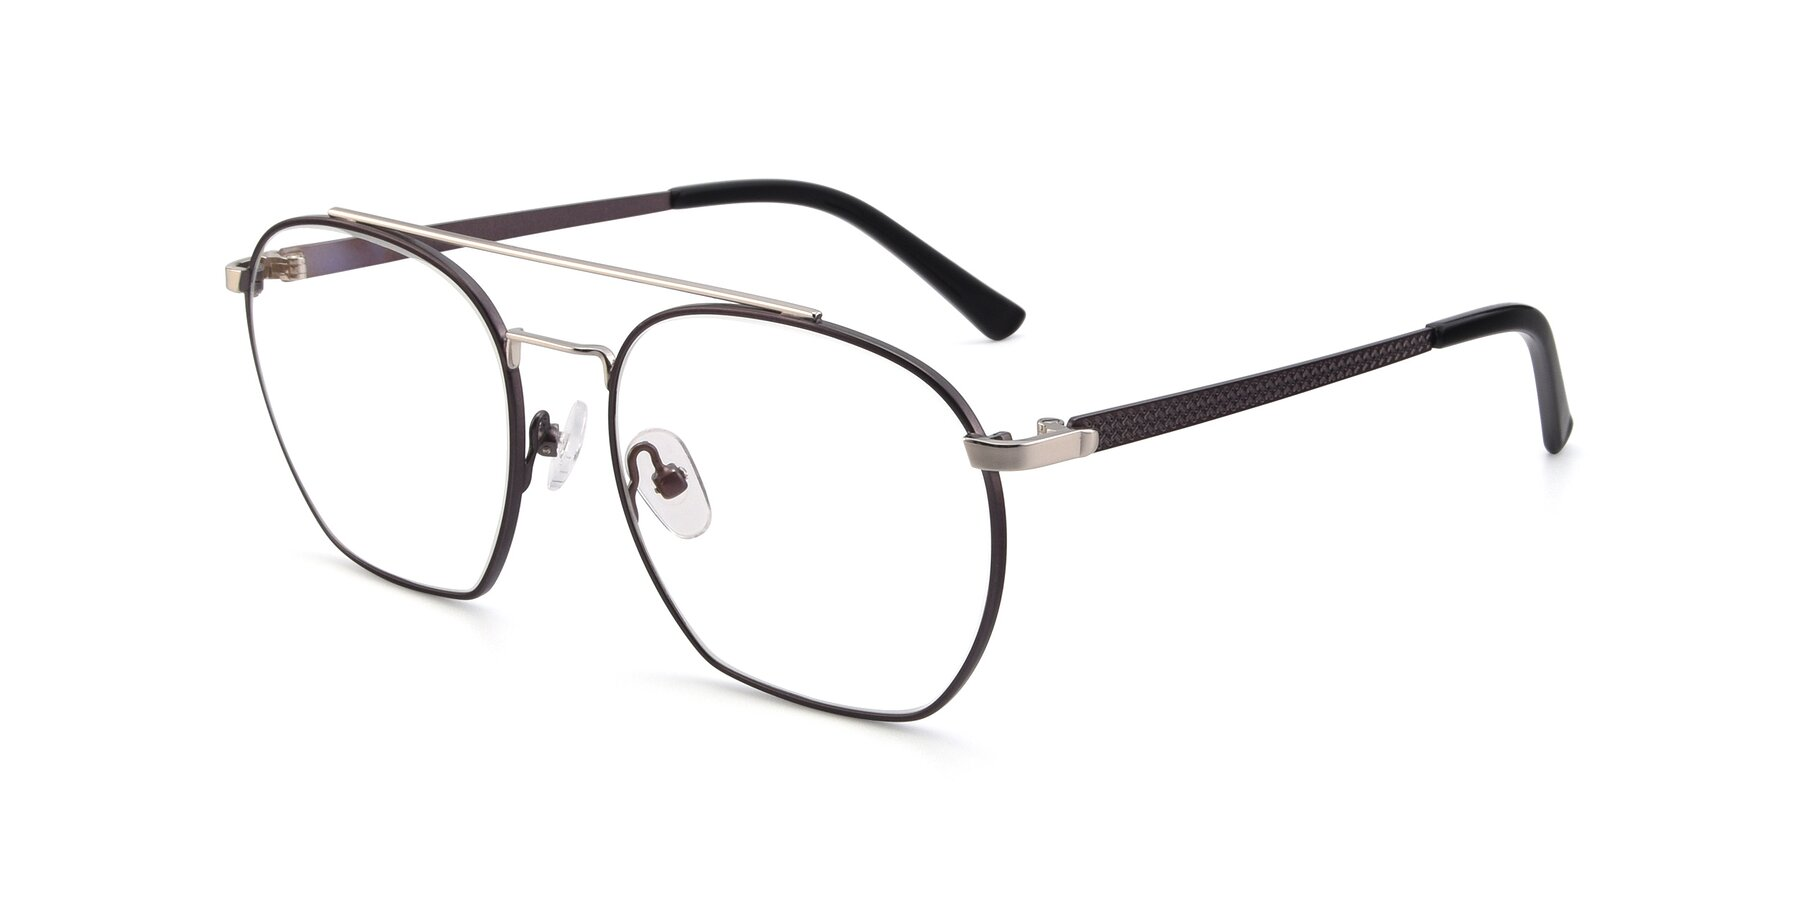 Angle of 9425 in Black-Silver with Clear Blue Light Blocking Lenses